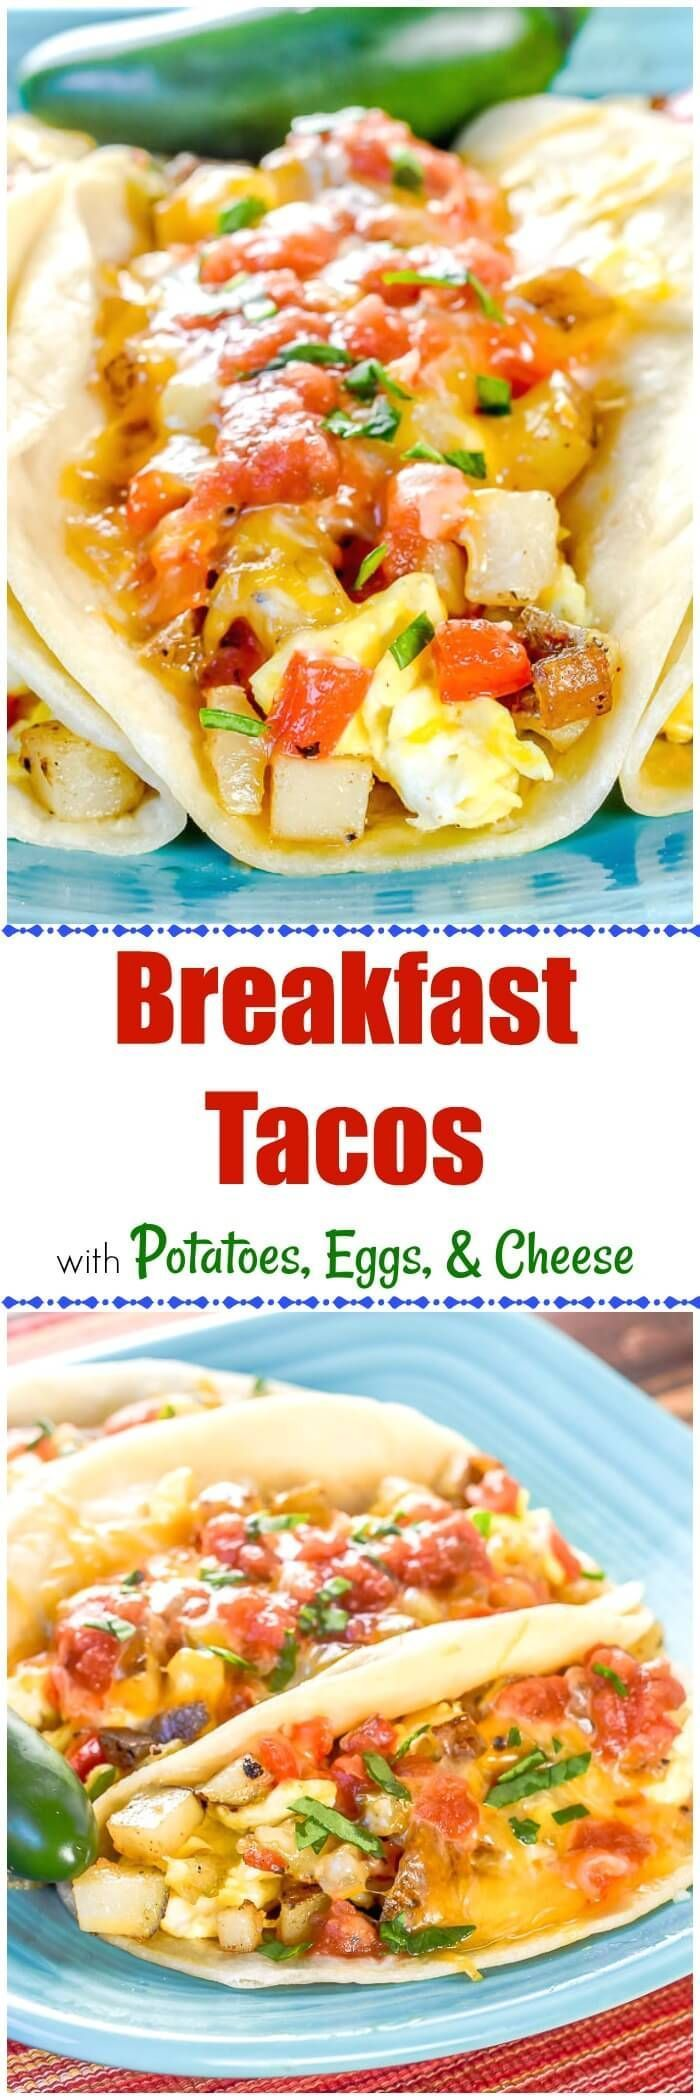 This Breakfast Taco ain'tno Taco Bell Breakfast. It's way better! These BreakfastTacos with Potatoes, Eggs, and Cheese are the real deal, like the ones you find in Austin, Texas! #BreakfastTacos #sundaybreakfast